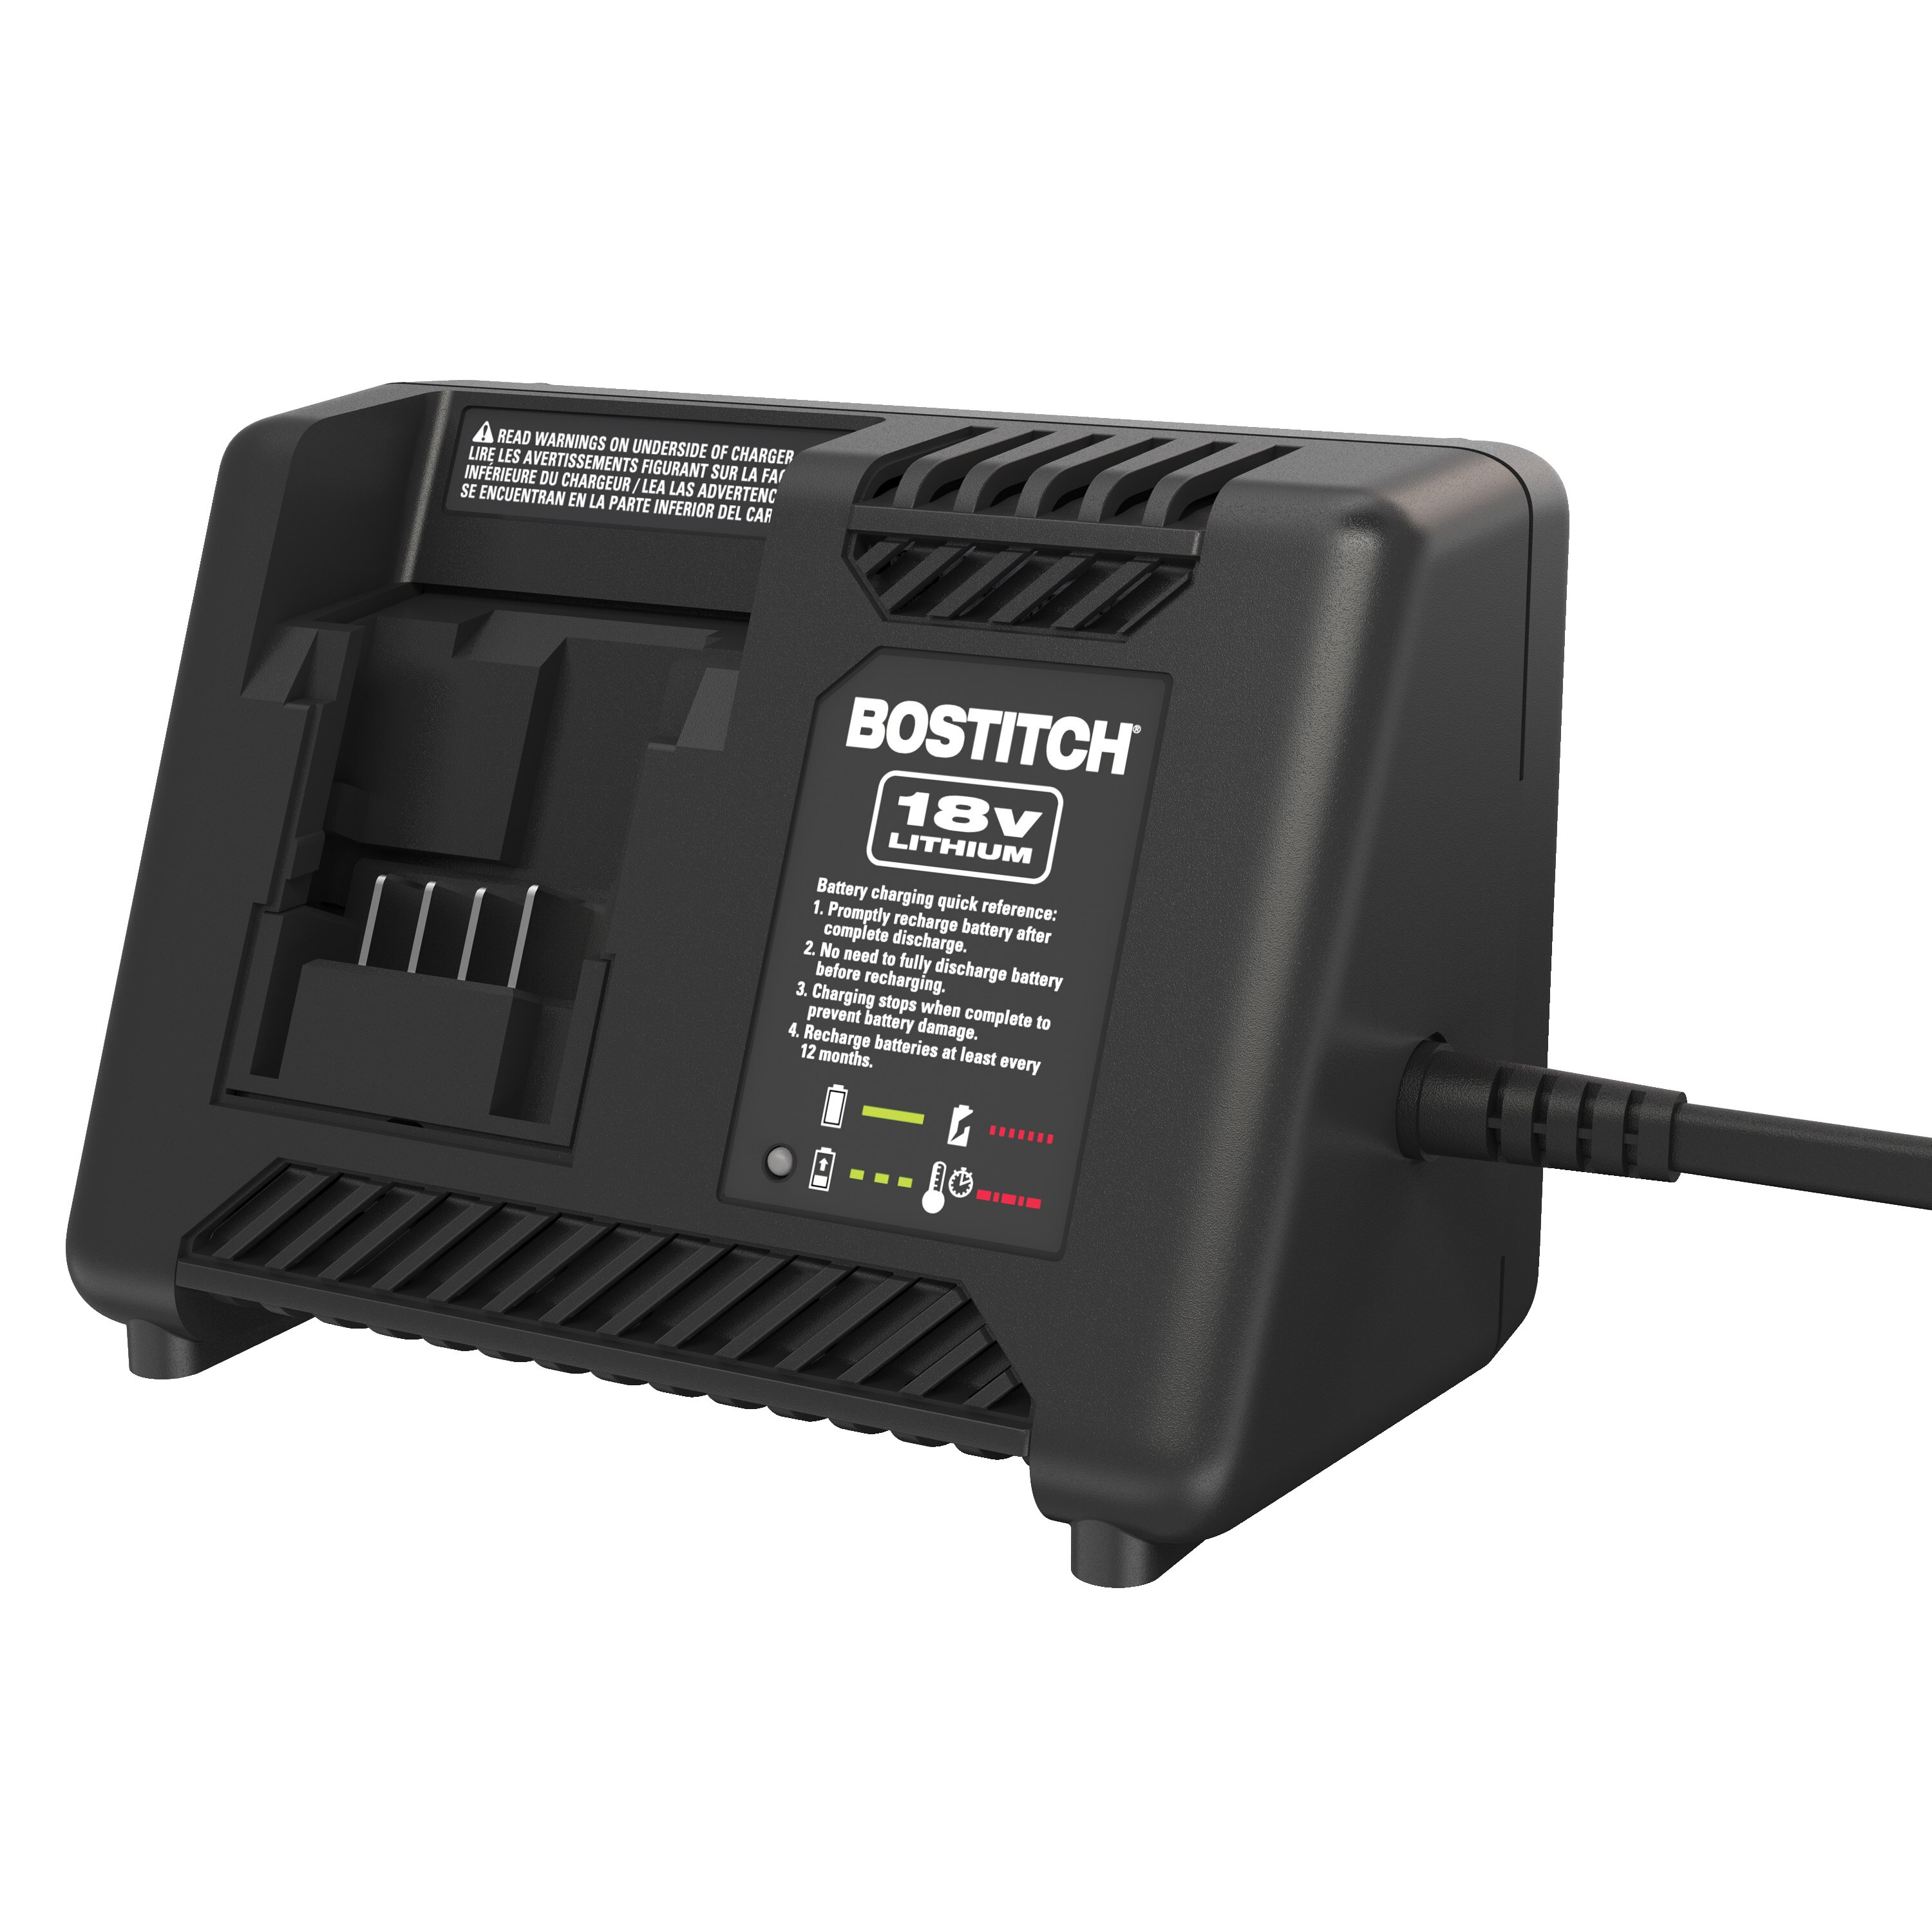 Bostitch - 18V Lithium Charger - BTC492L